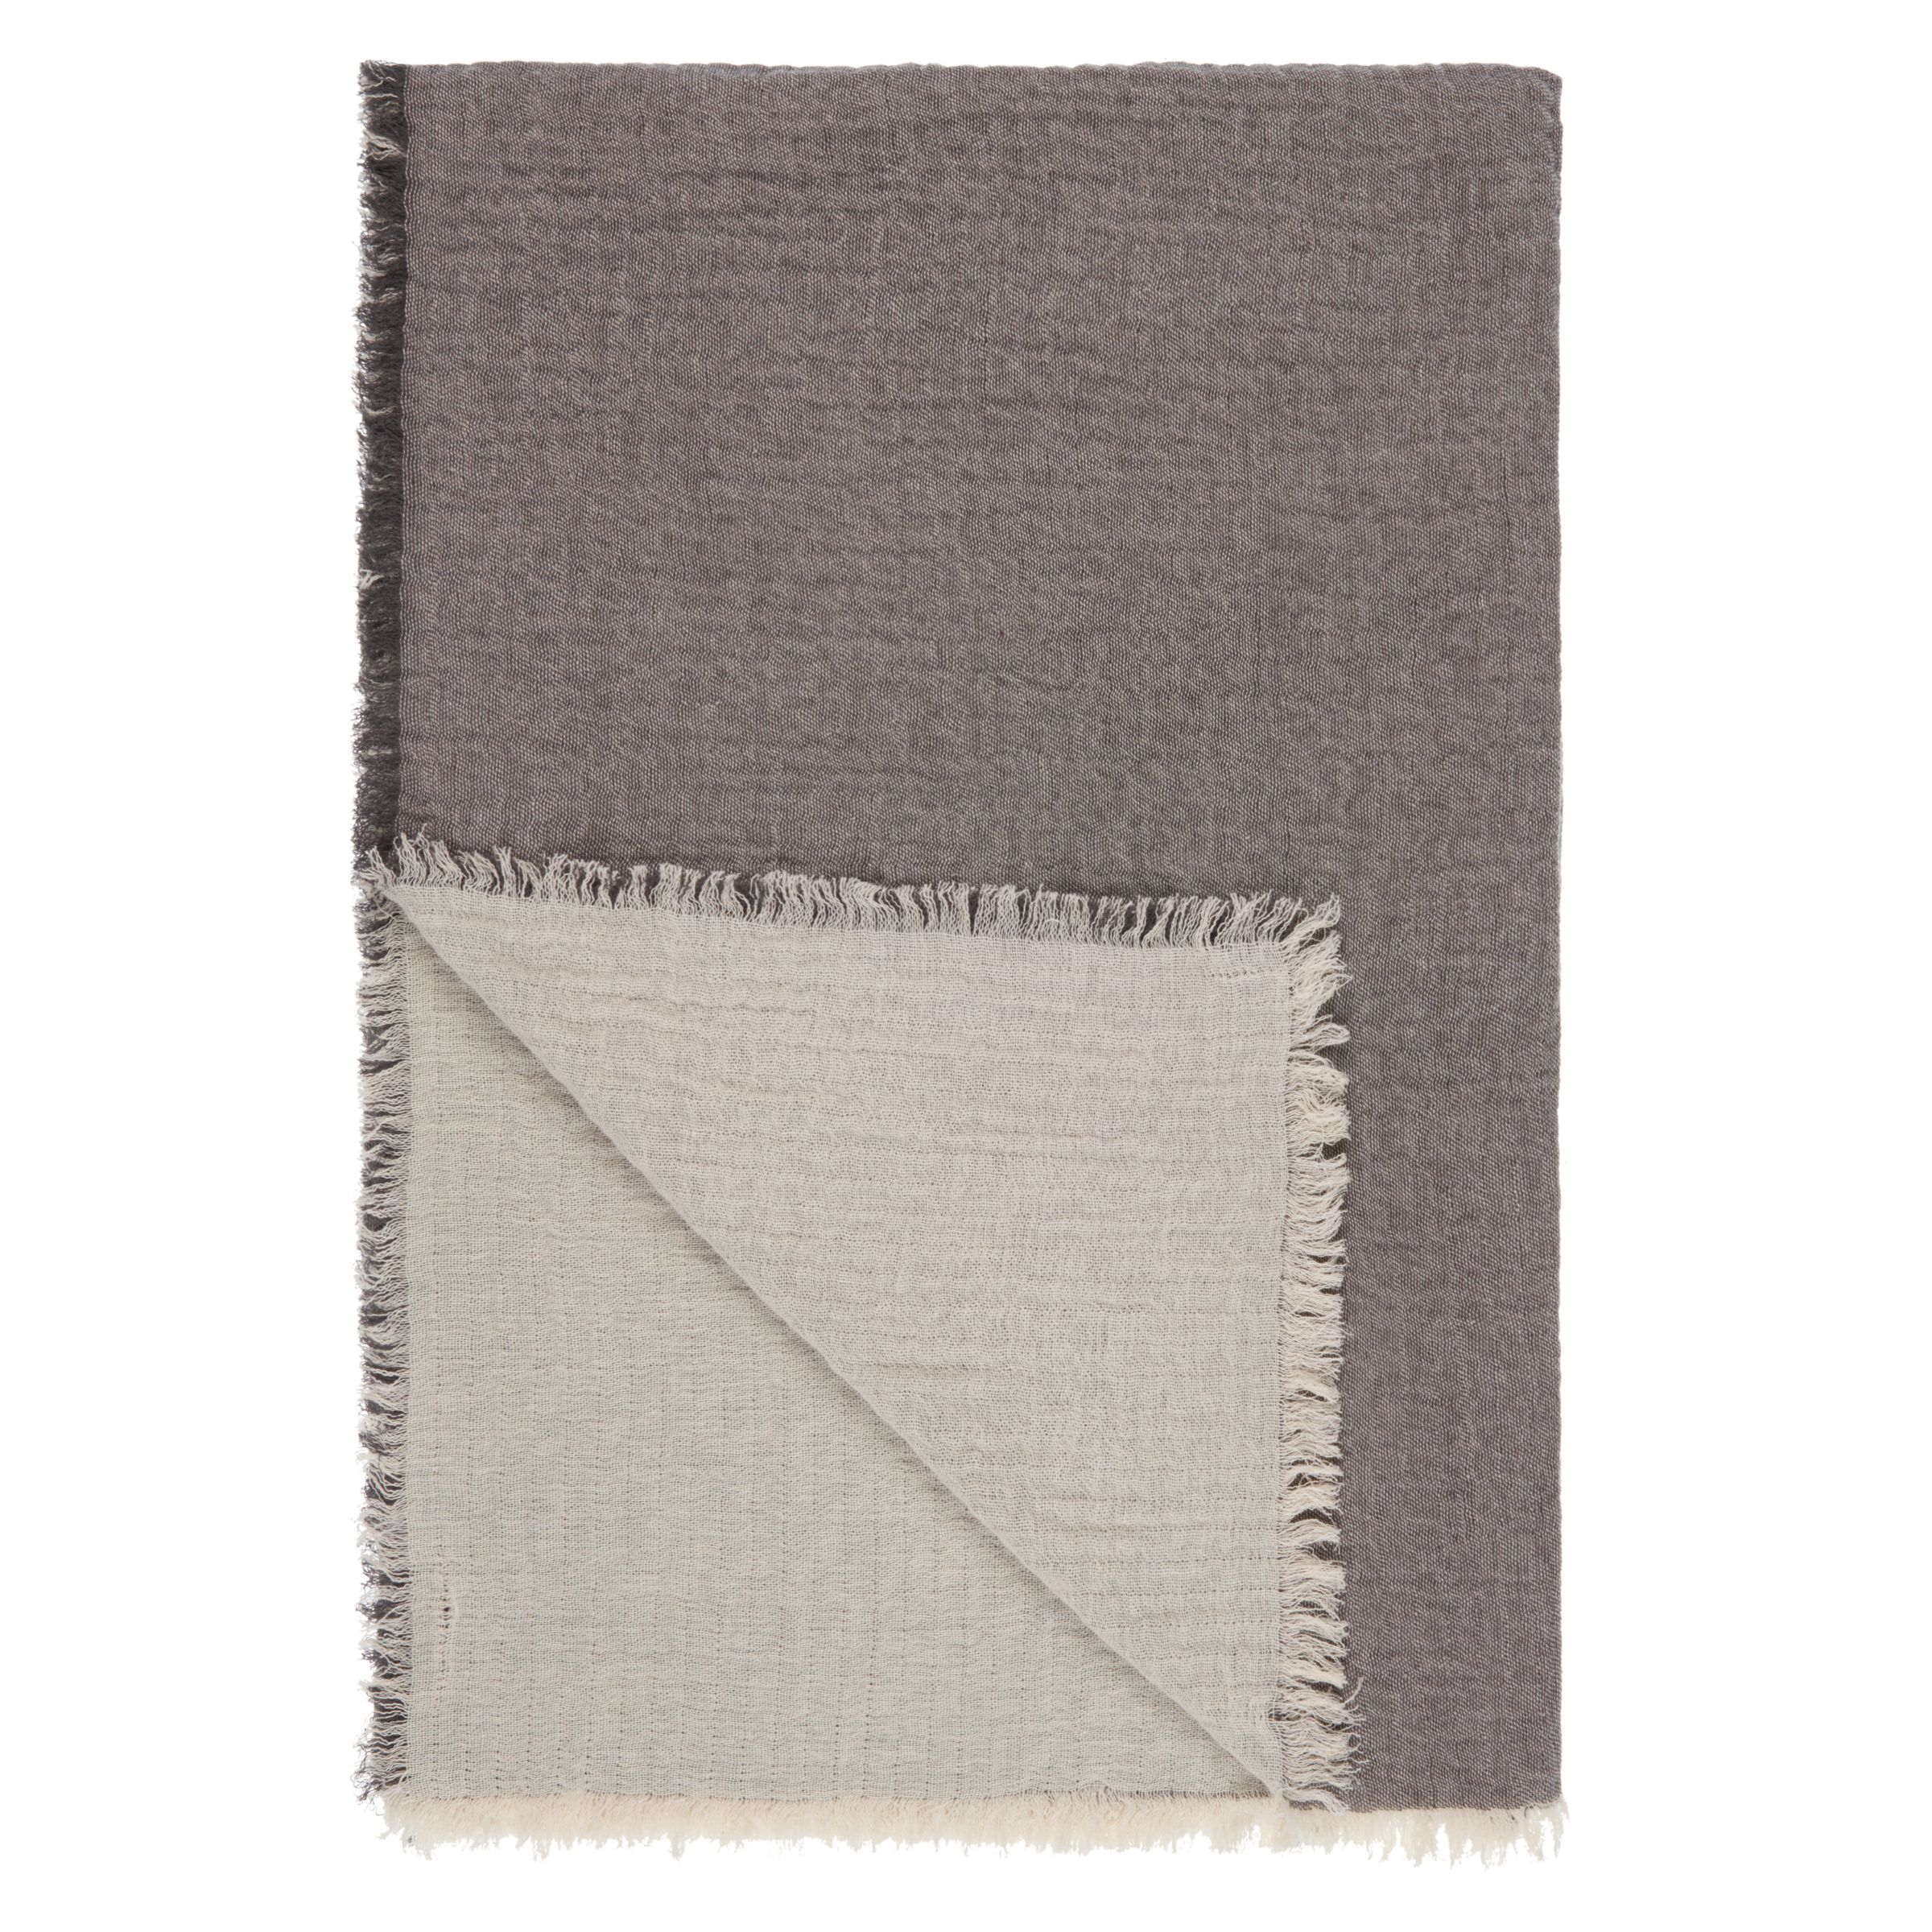 Design Project by John Lewis Design Project by John Lewis No.113 Throw